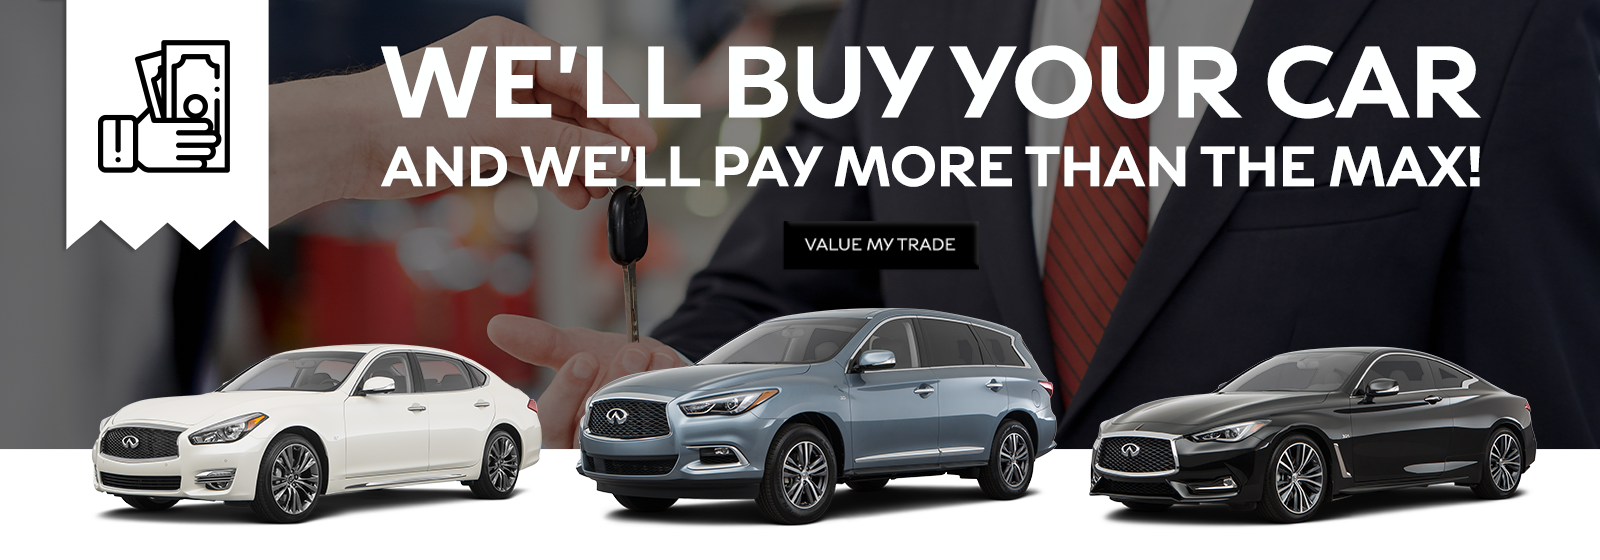 We will buy your Car_whiteFlag1600x560